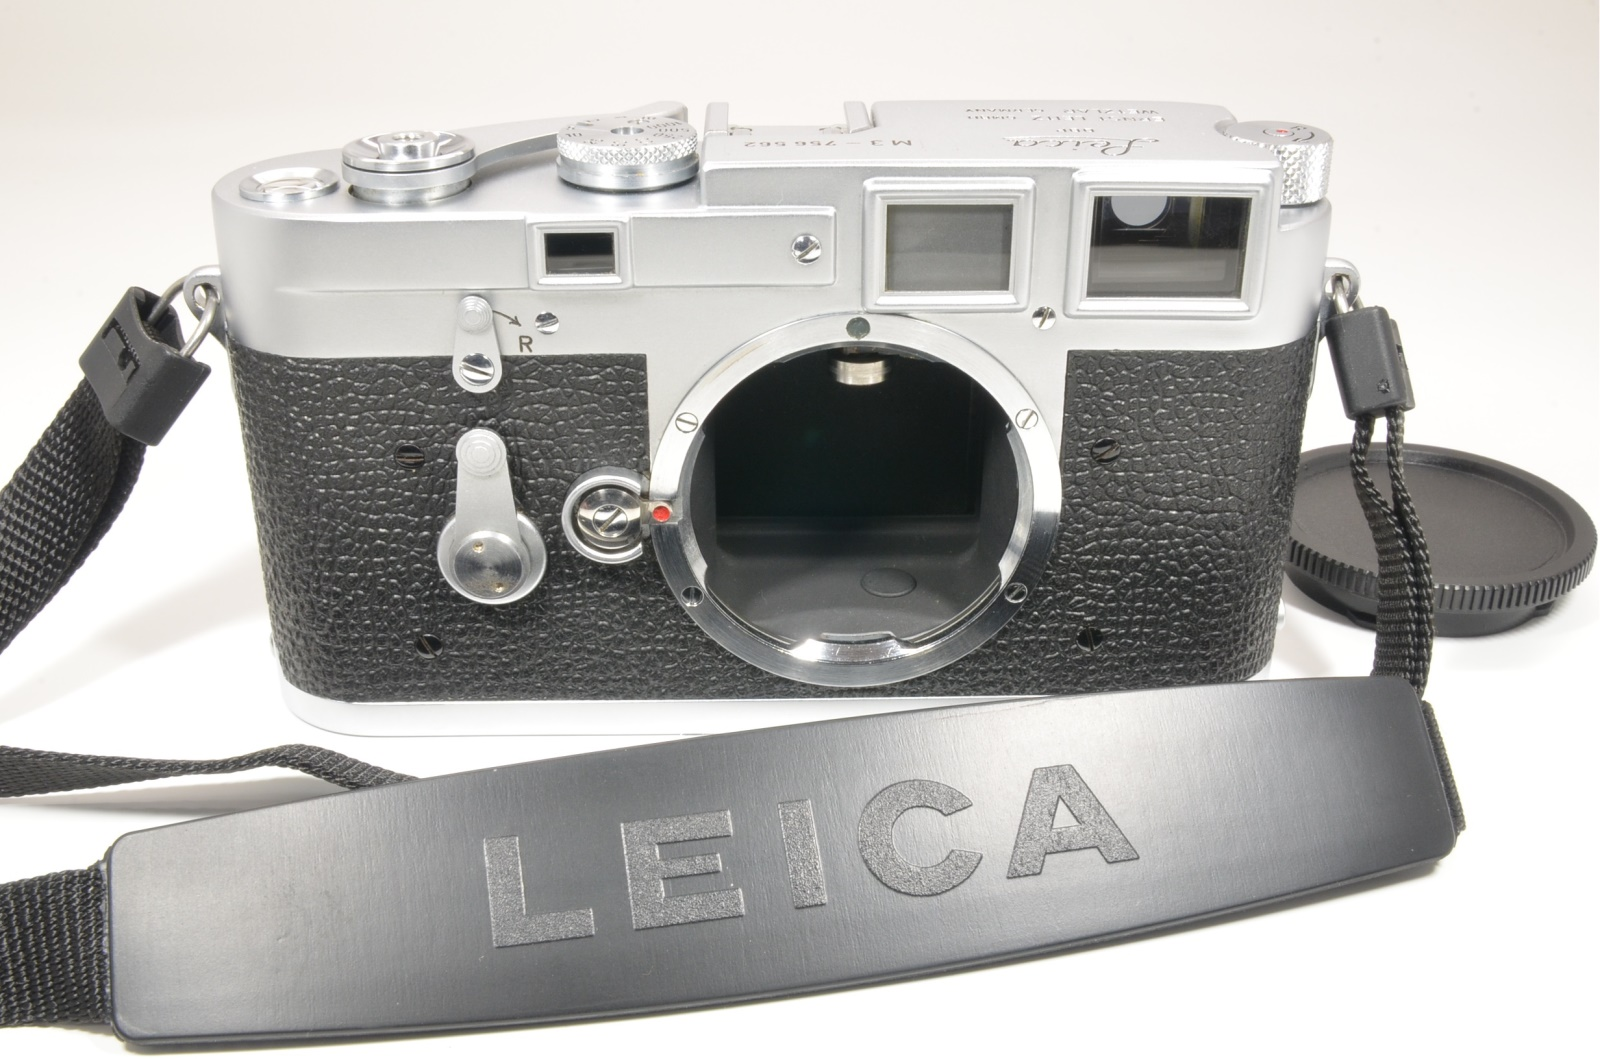 leica m3 double stroke s/n 756562 year 1955 with strap from japan